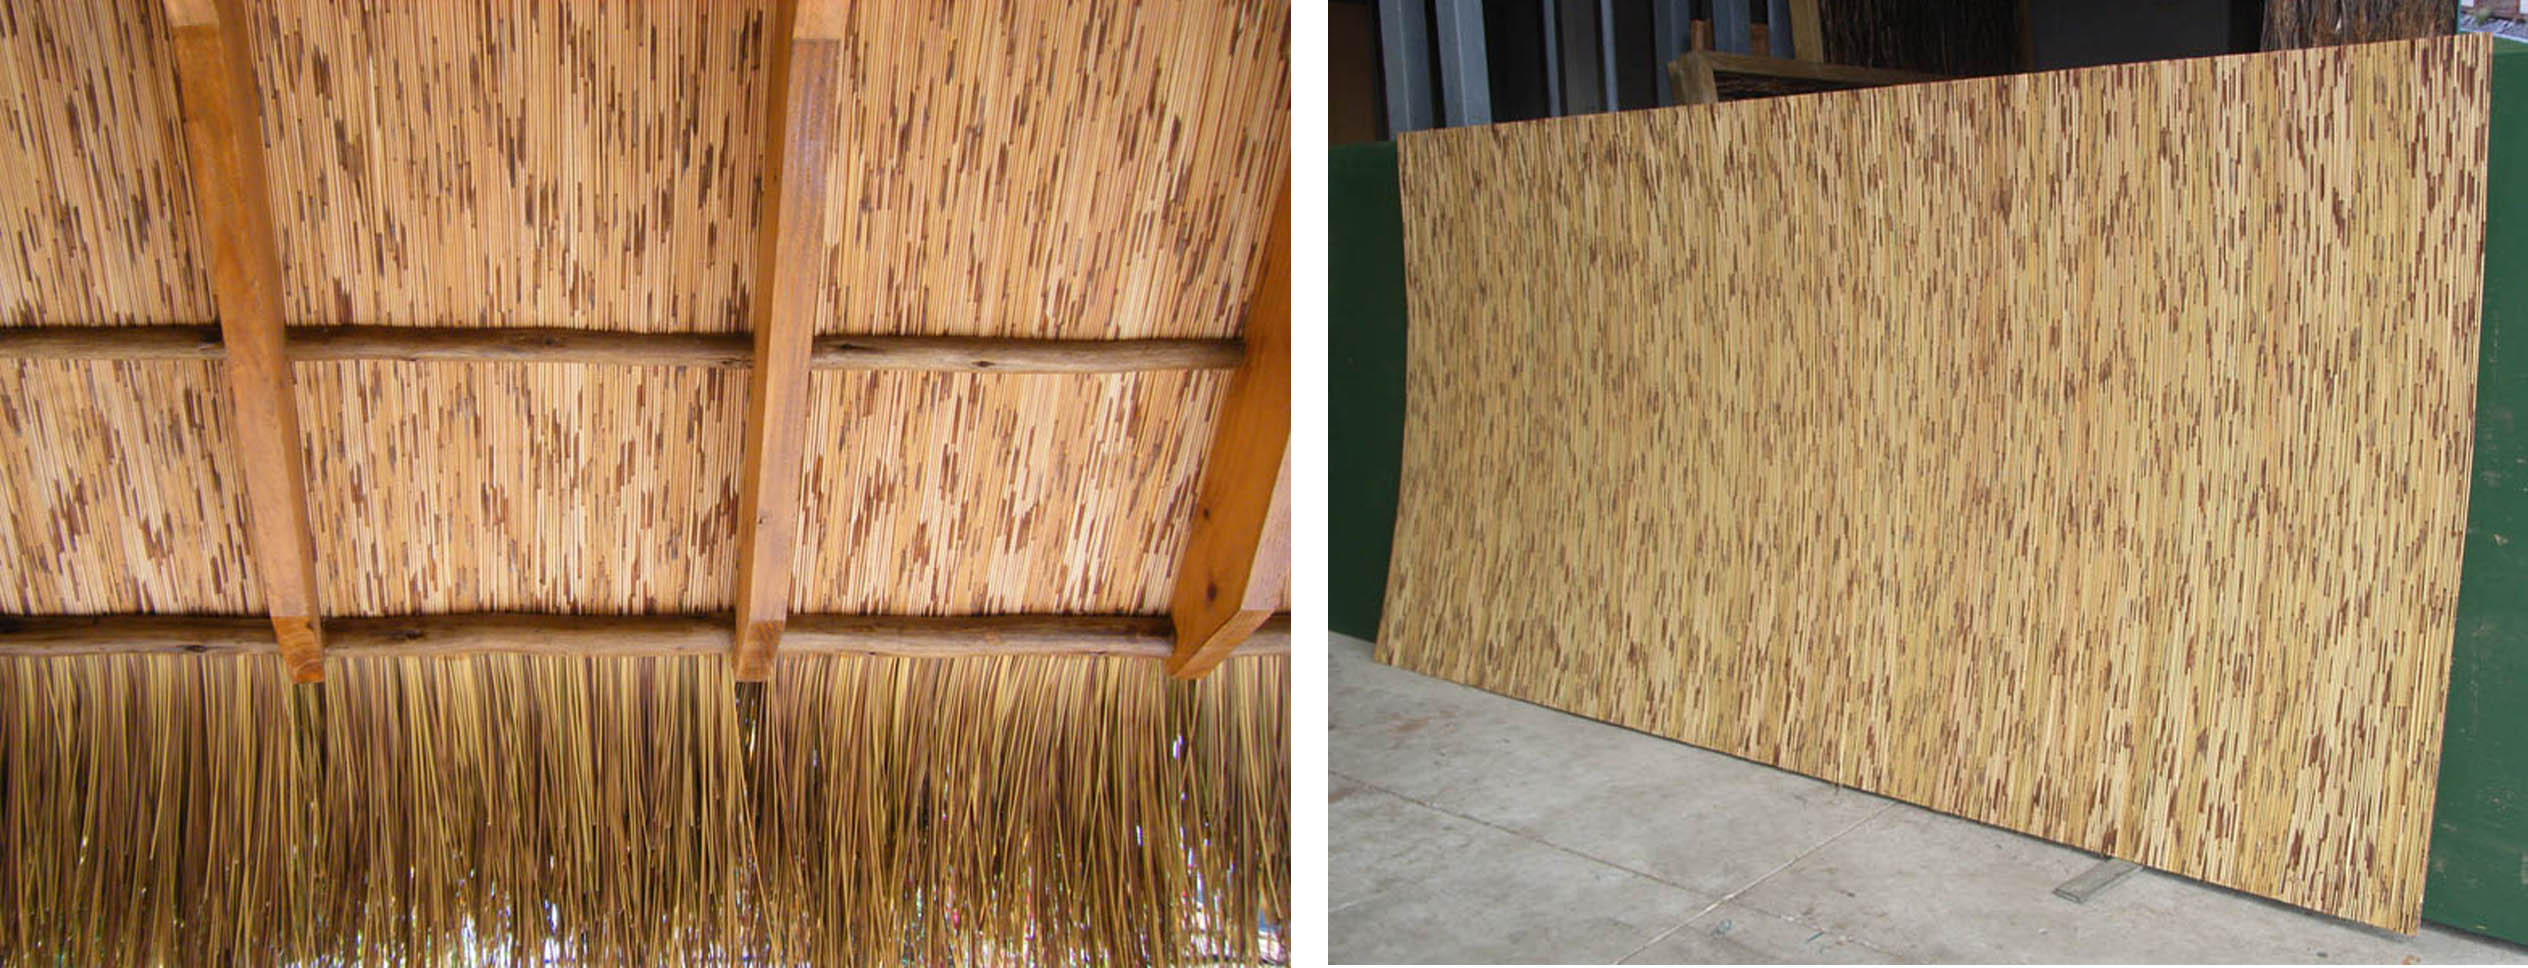 100 Thatched Roof Materials Bamboo Eucalyptus Pin By